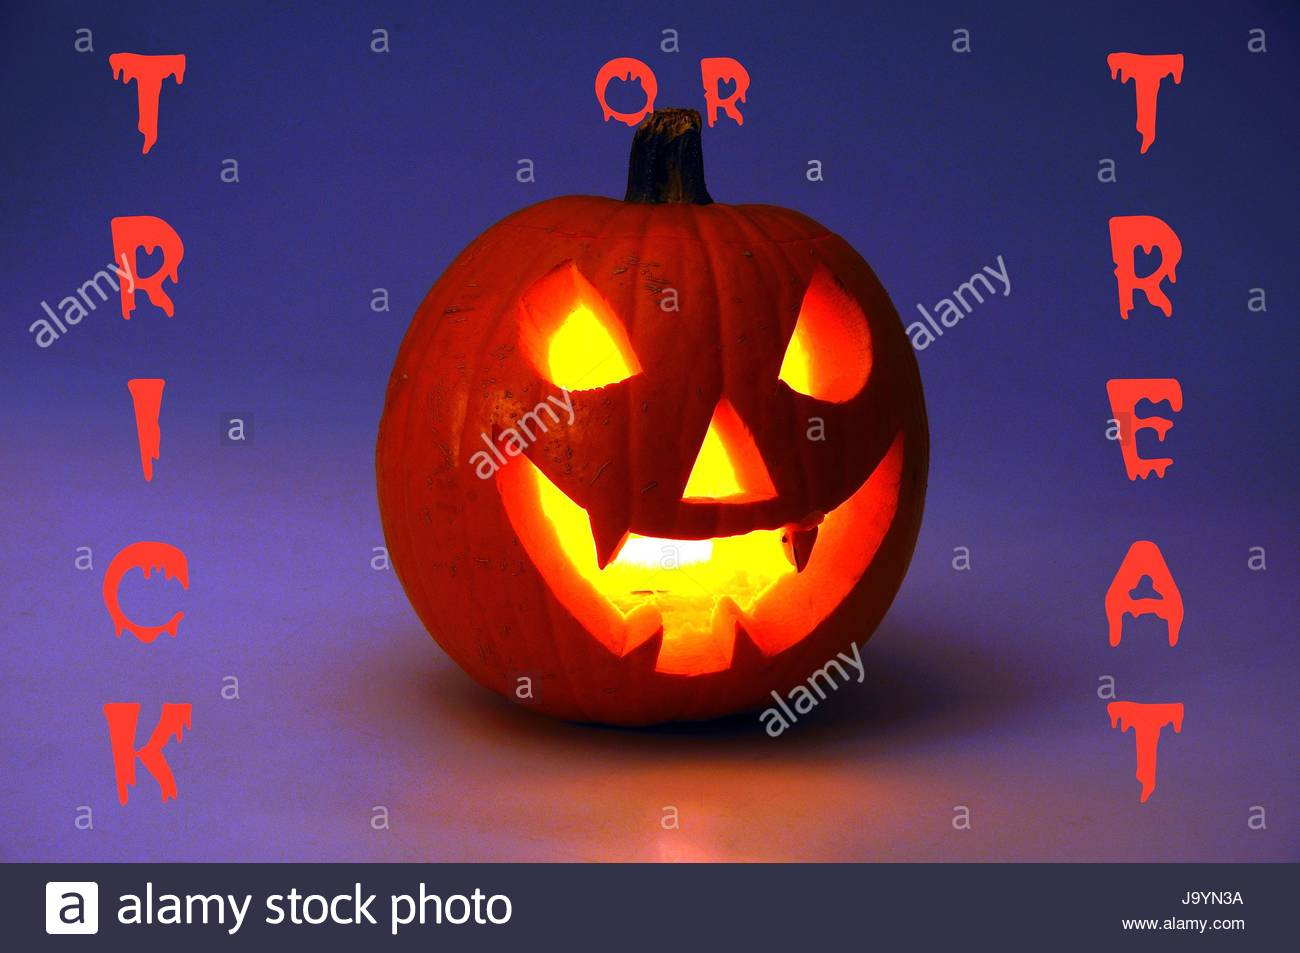 scary halloween pumpkin lit candlelight trick or treat  scary halloween pumpkin lit candlelight trick or treat writing on the background